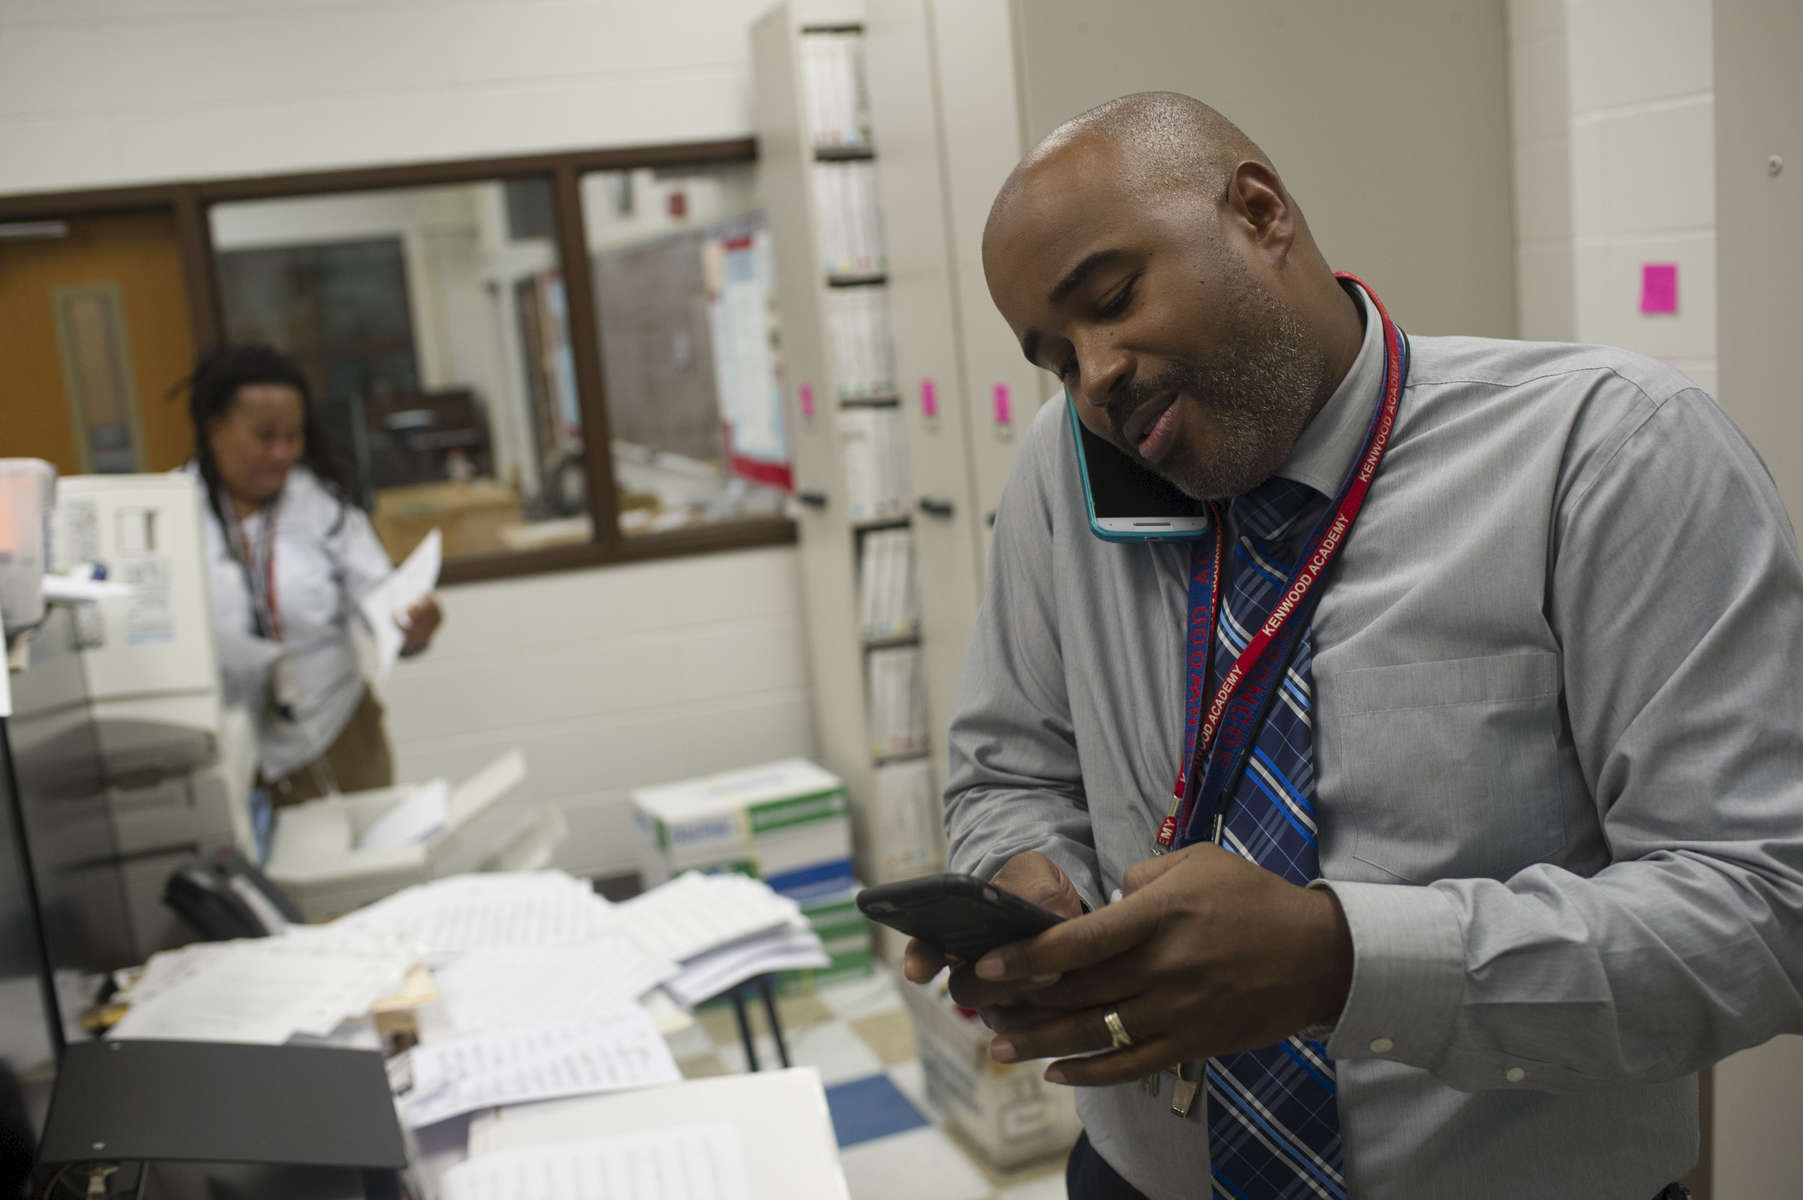 At the end of the day Music Department Chair and Band Director Gerald Powell responds to phone messages in the Music Departments offices at Kenwood Academy High school, November 2, 2016.